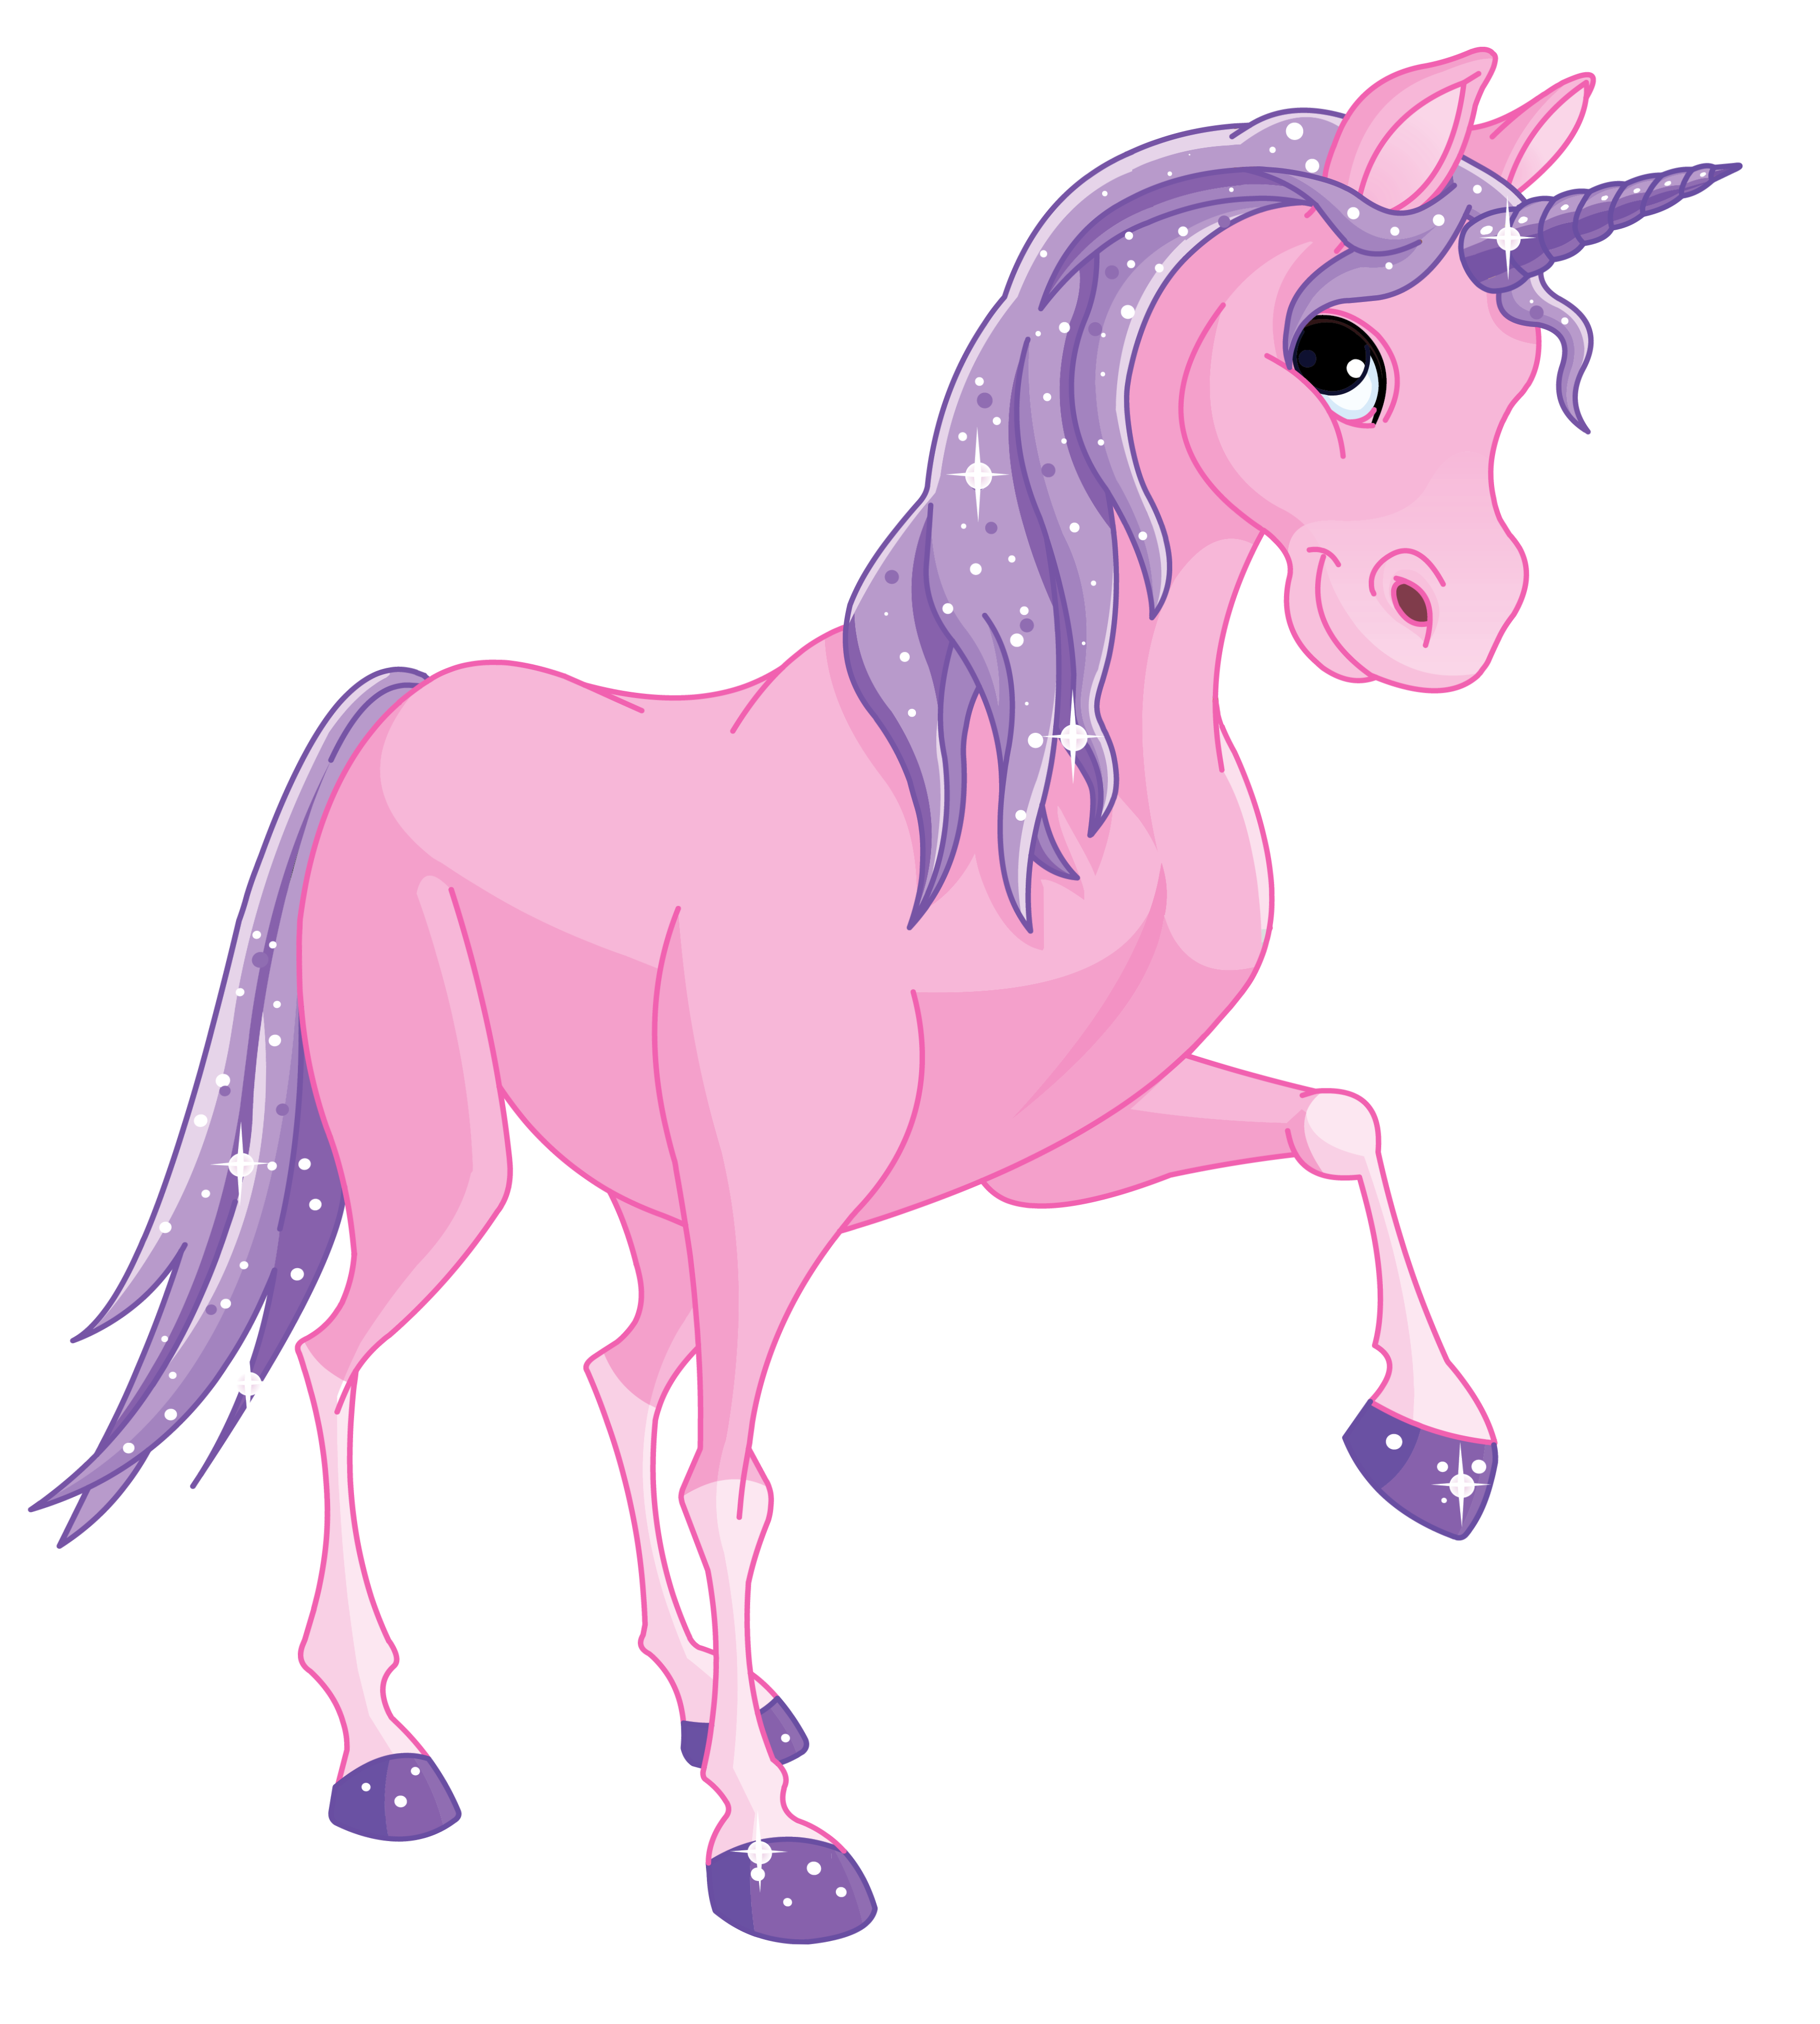 Unicorn crown clipart clip freeuse library Pin by Marina ♥♥♥ on Unicórnios | Pinterest | Girl sketch ... clip freeuse library